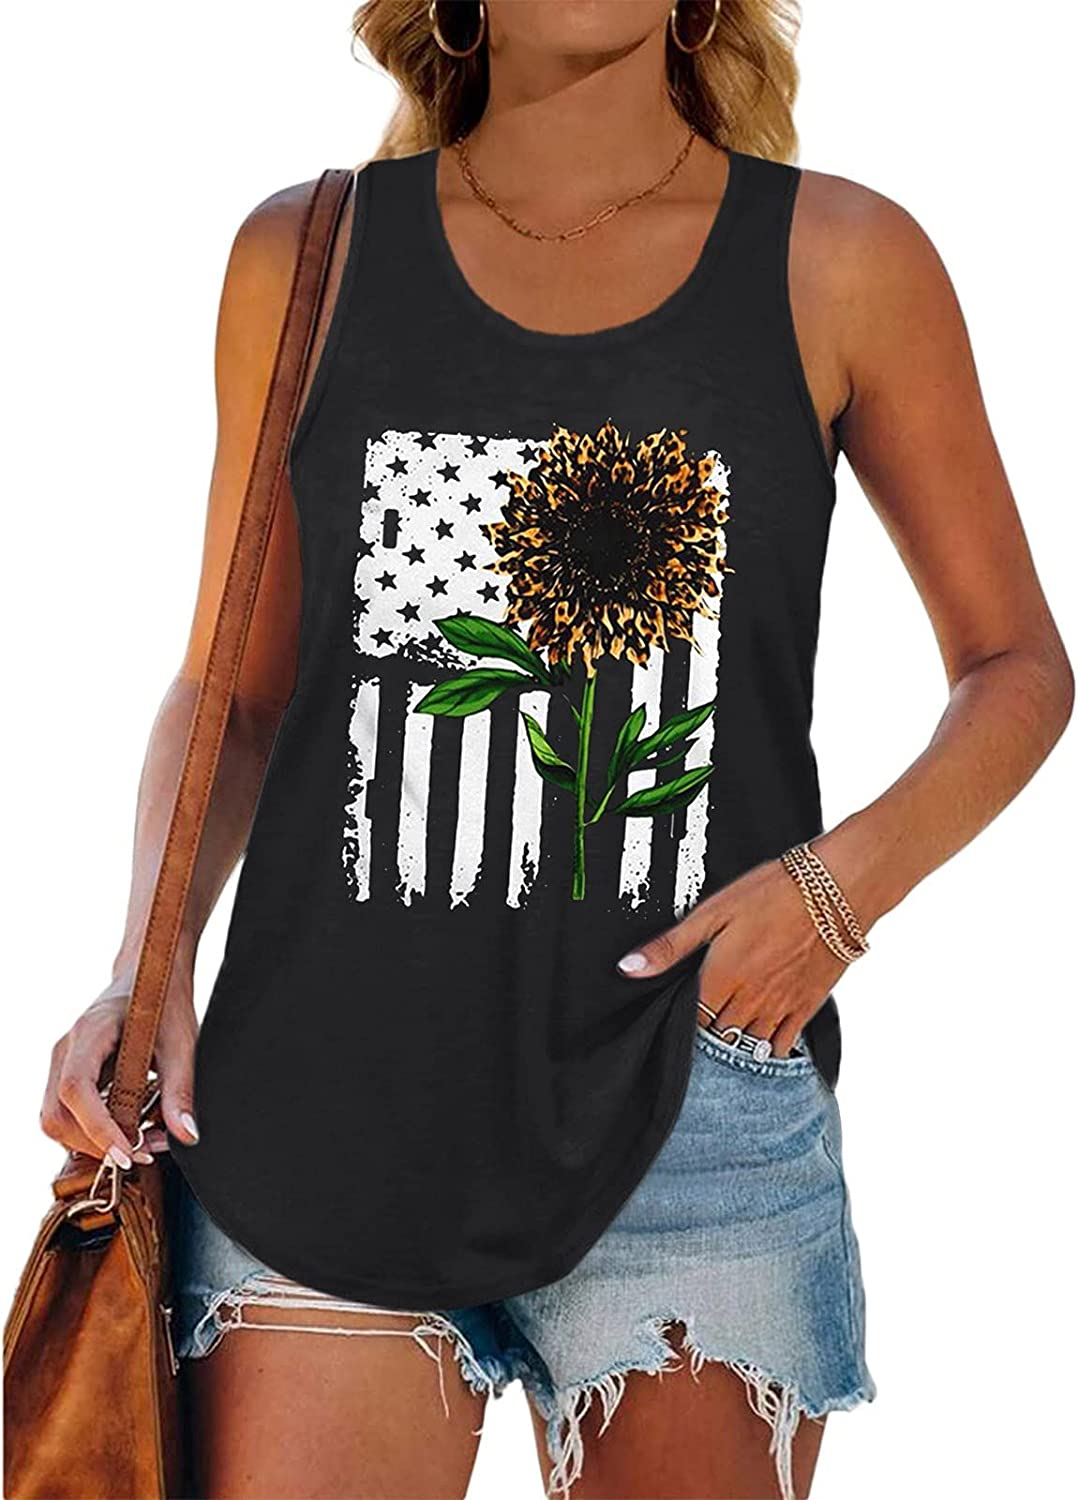 AODONG Tank Tops for Women, Womens 4th of July Casual Summer Sleeveless Vest Tshirt Workout Blouse Tank Top Tunic Tee